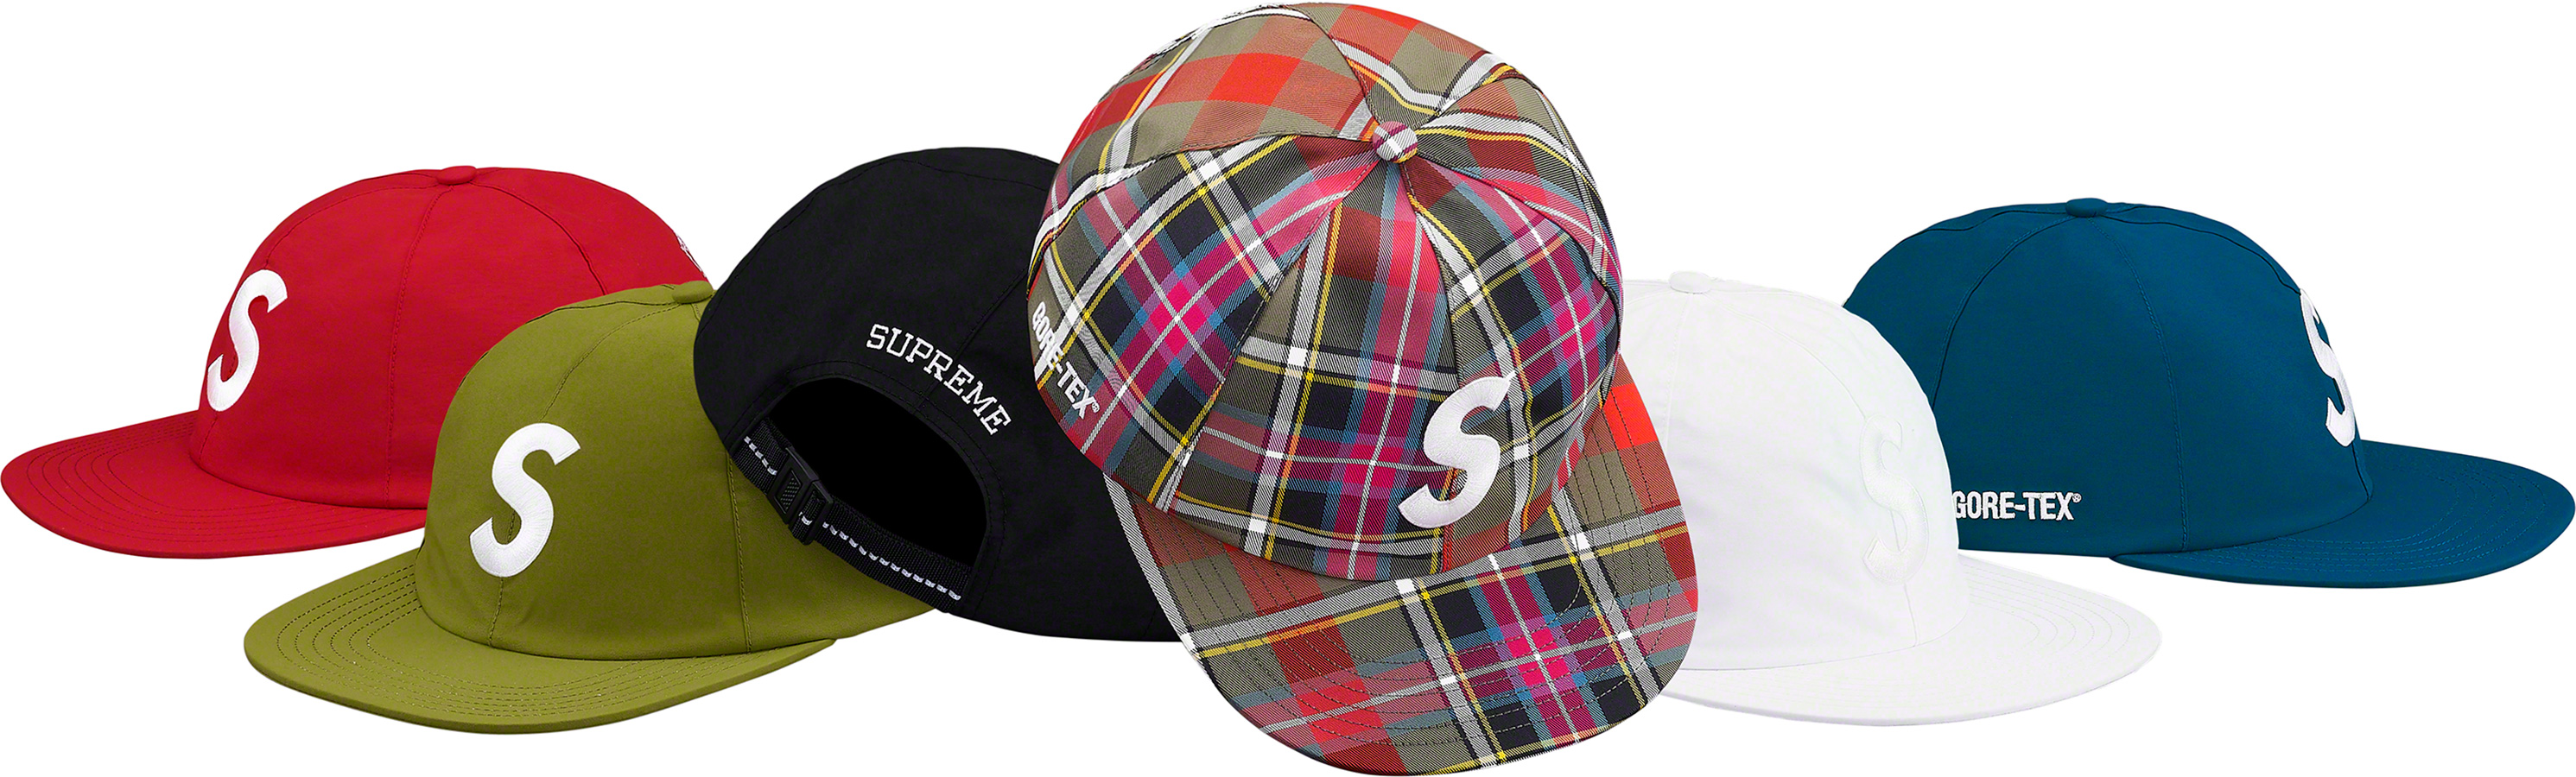 supreme-19ss-spring-summer-gore-tex-s-logo-6-panel